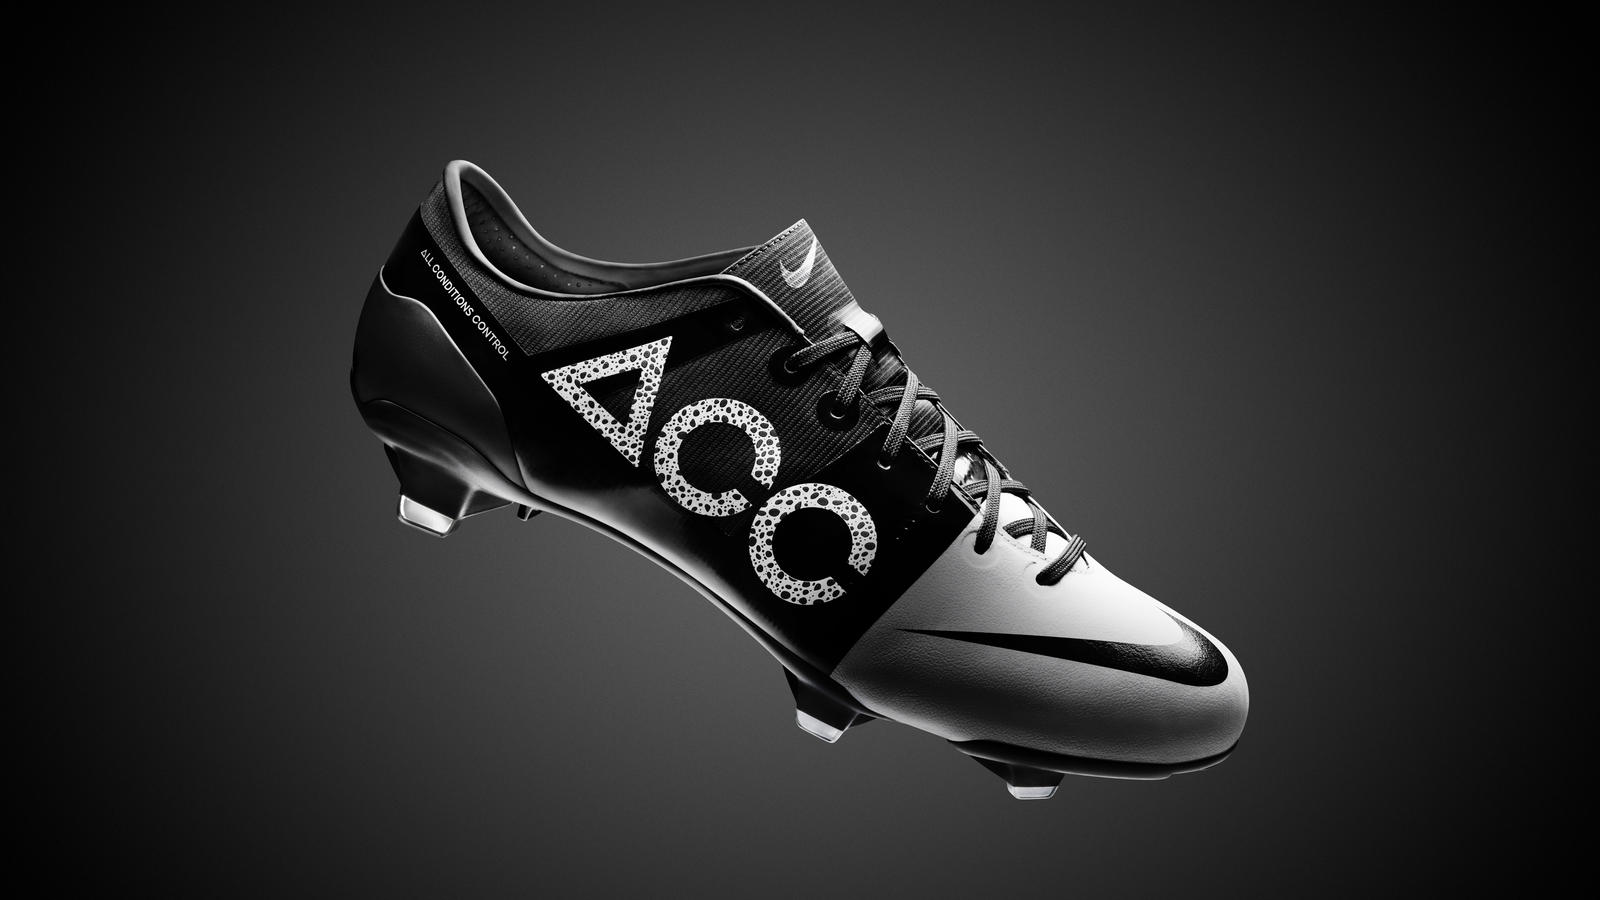 calcetines miseria servilleta  Nike GS 2 boot delivers seamless ball control, low environmental impact -  Nike News